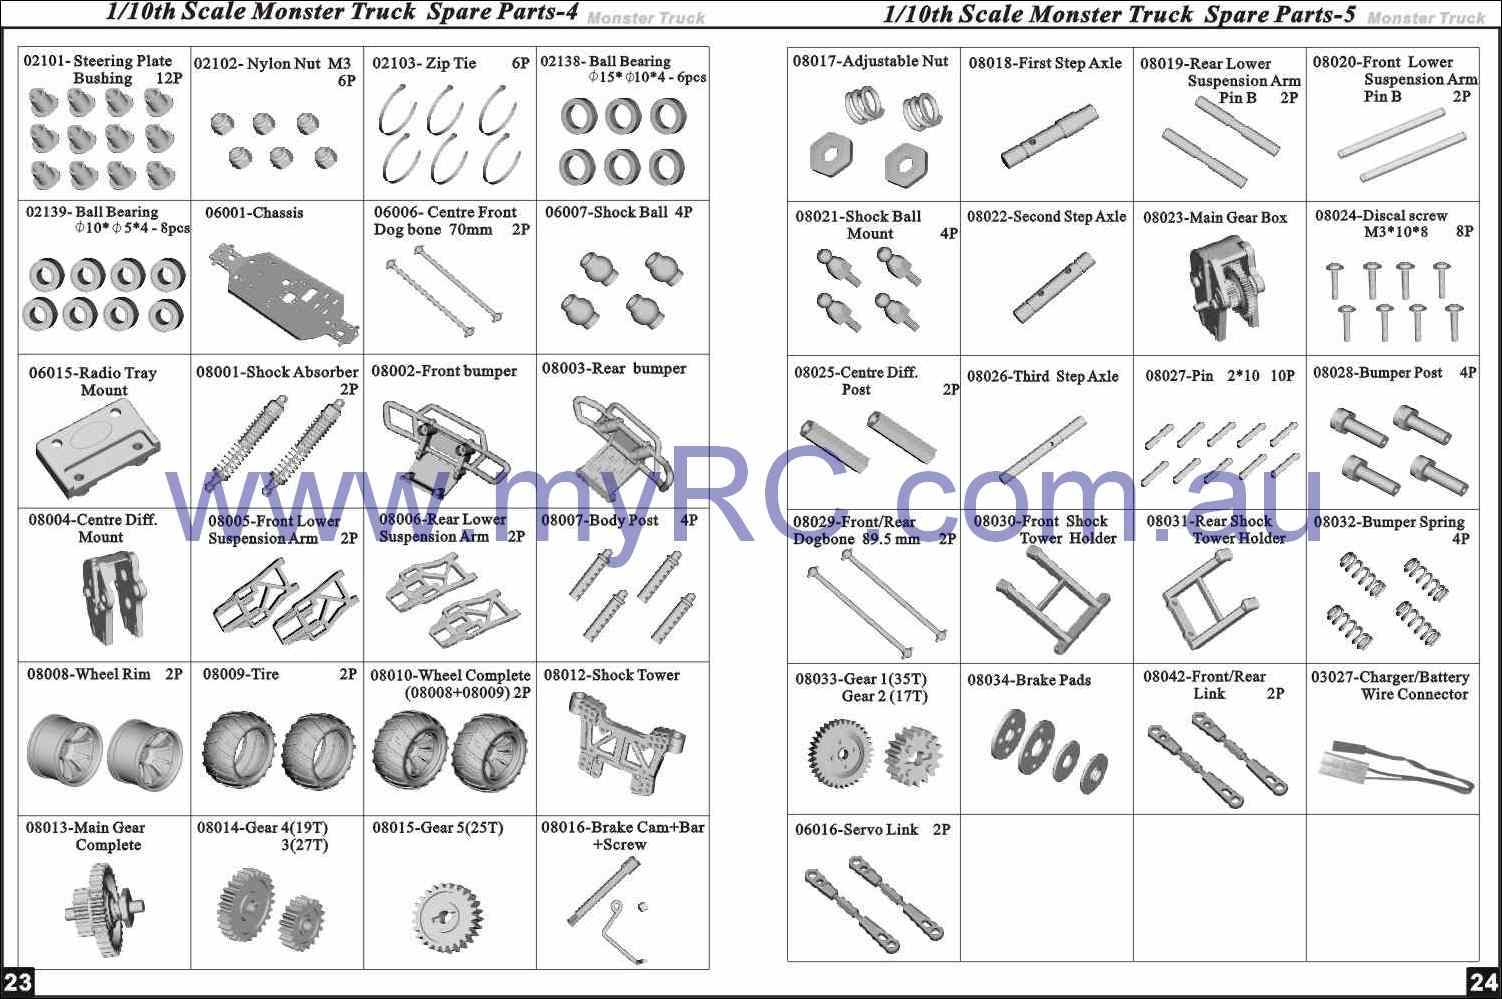 http://www.rcxmodels.com/parts/Himoto-HSP-Nitro-monster-truck-parts-list/HIMOTO-HSP-Nitro-Monster-Truck-Parts-List-6.jpg